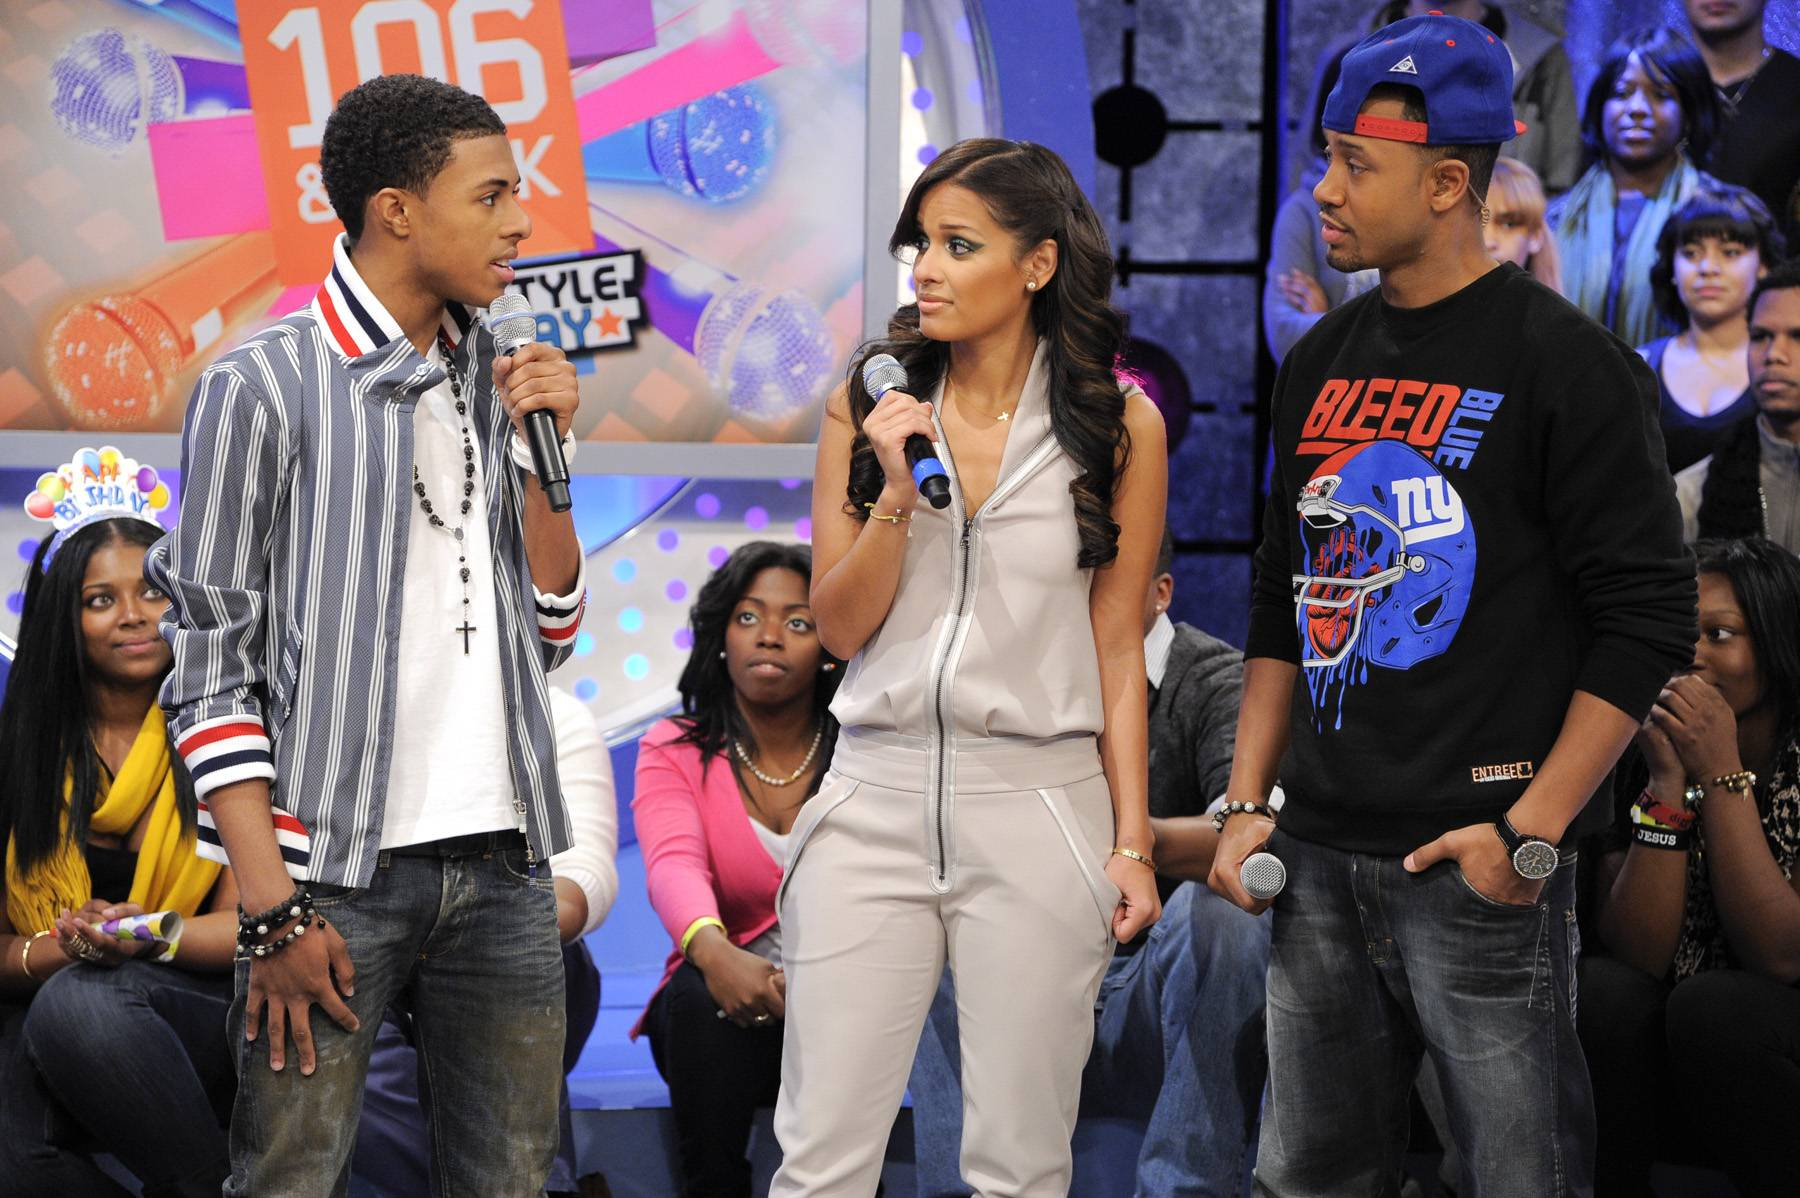 It Was All a Dream - Diggy Simmons with Rocsi Diaz and Terrence J at 106 & Park, January 20, 2012. (Photo: John Ricard / BET)